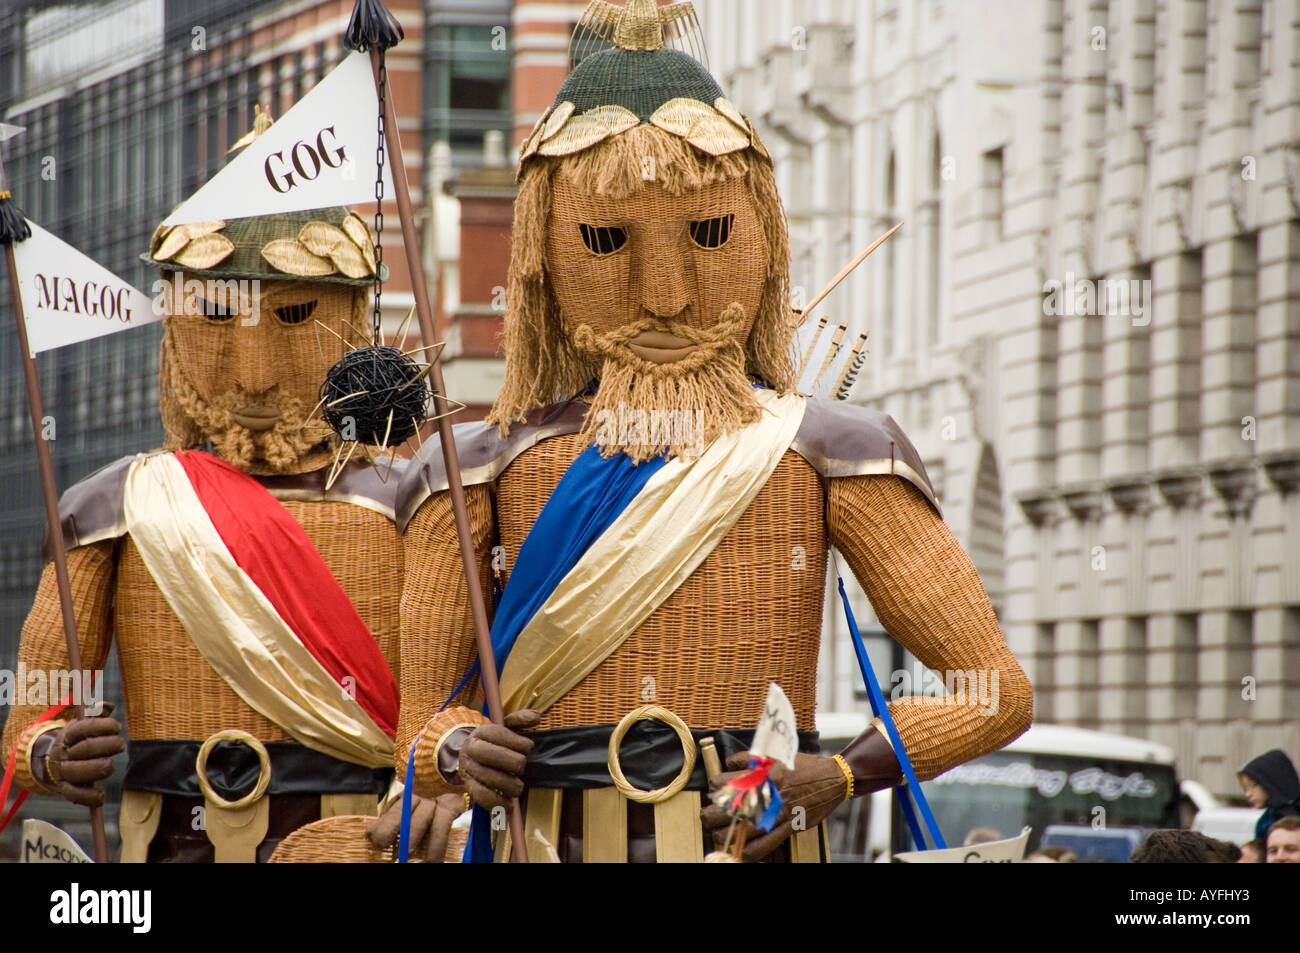 Image result for picture of lord mayor gog and magog statues